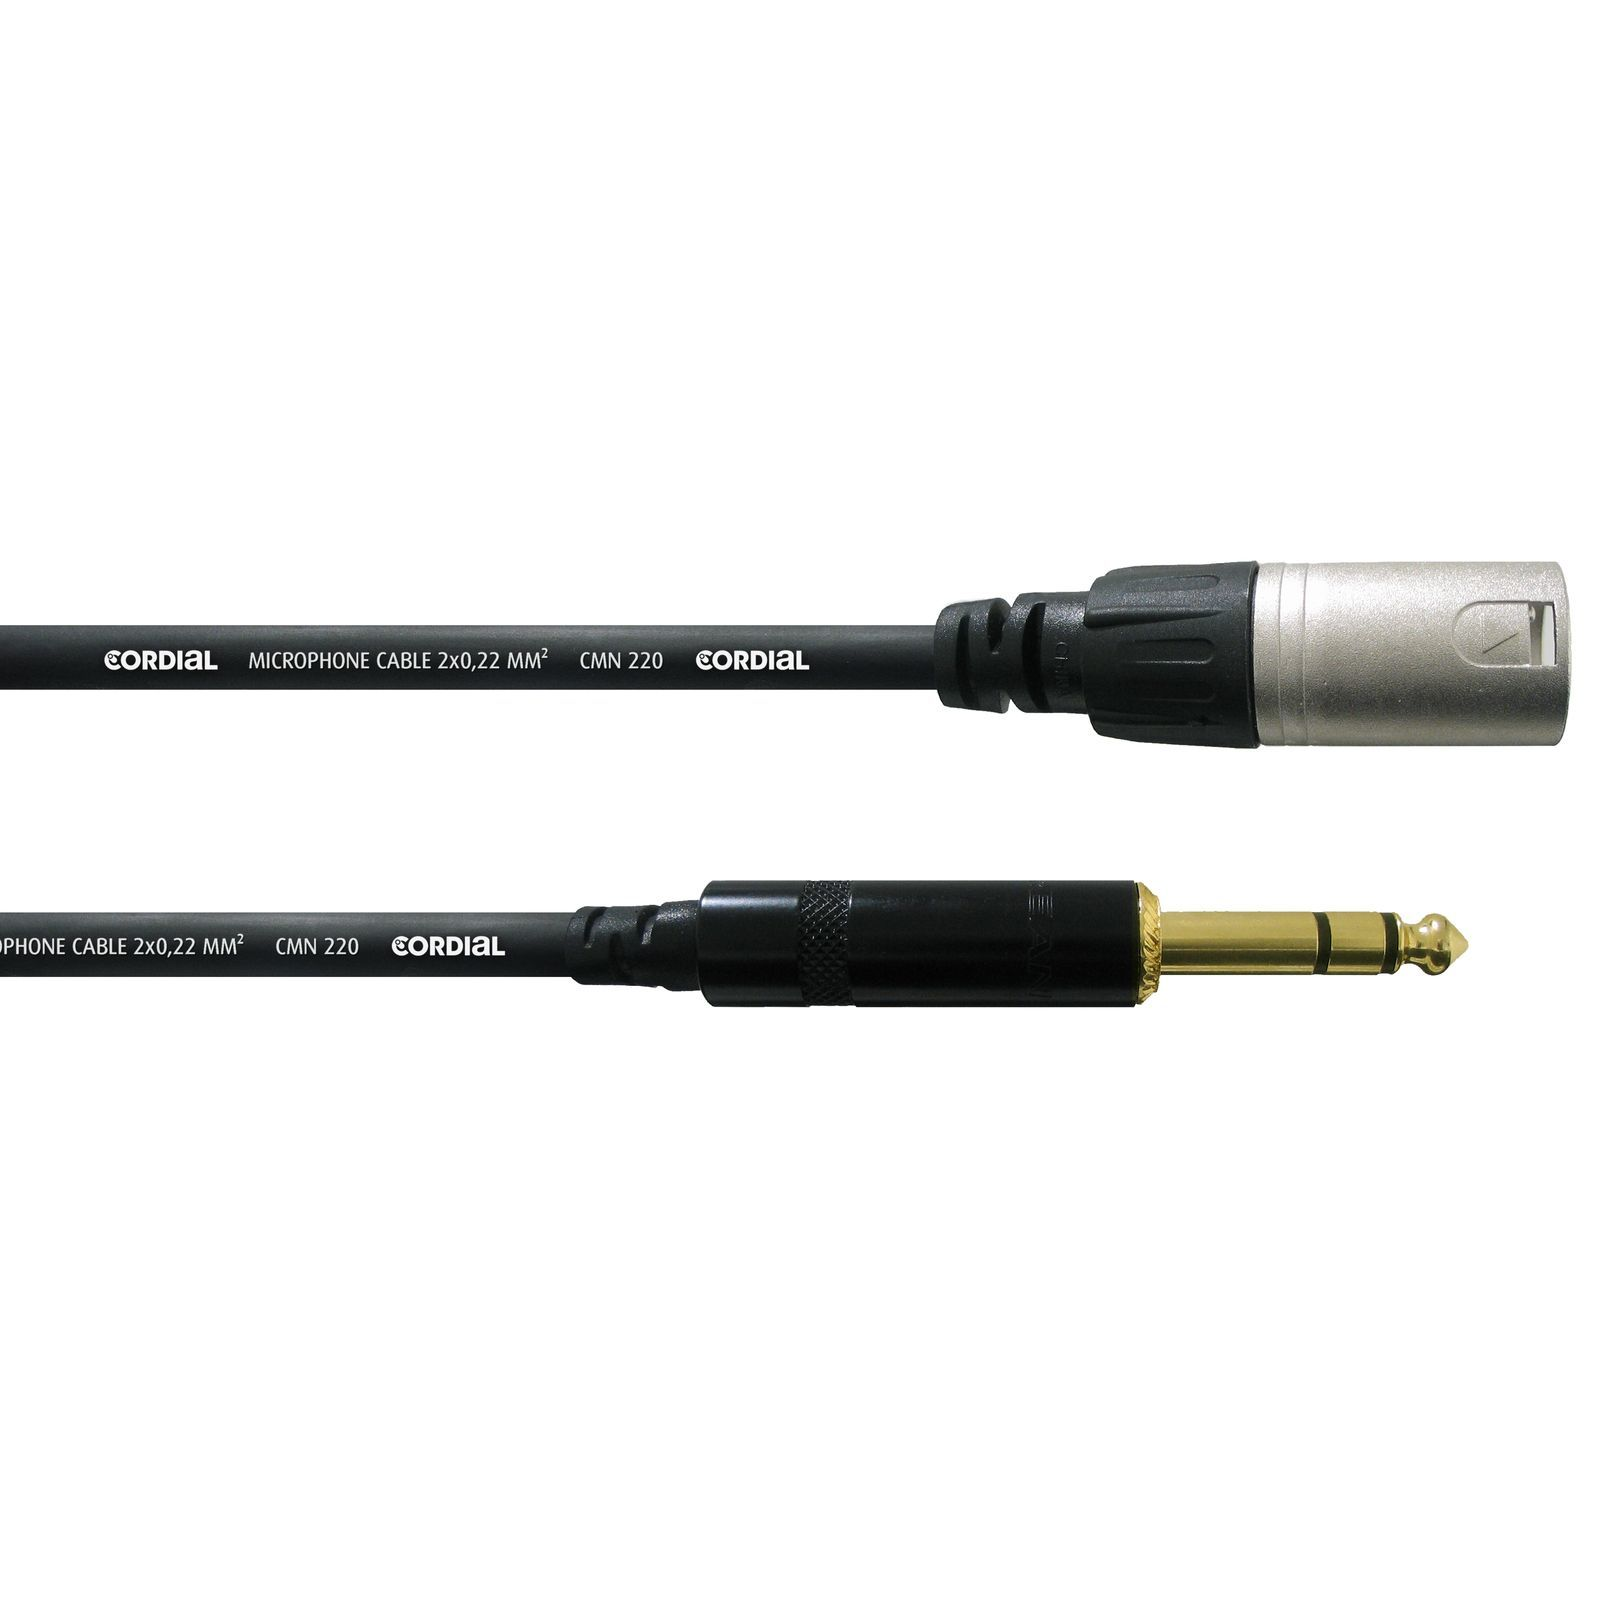 Cordial CFM 0.3 MV intro Microphone Cable XLR male - Jack stereo 0,3m Rean Product Image